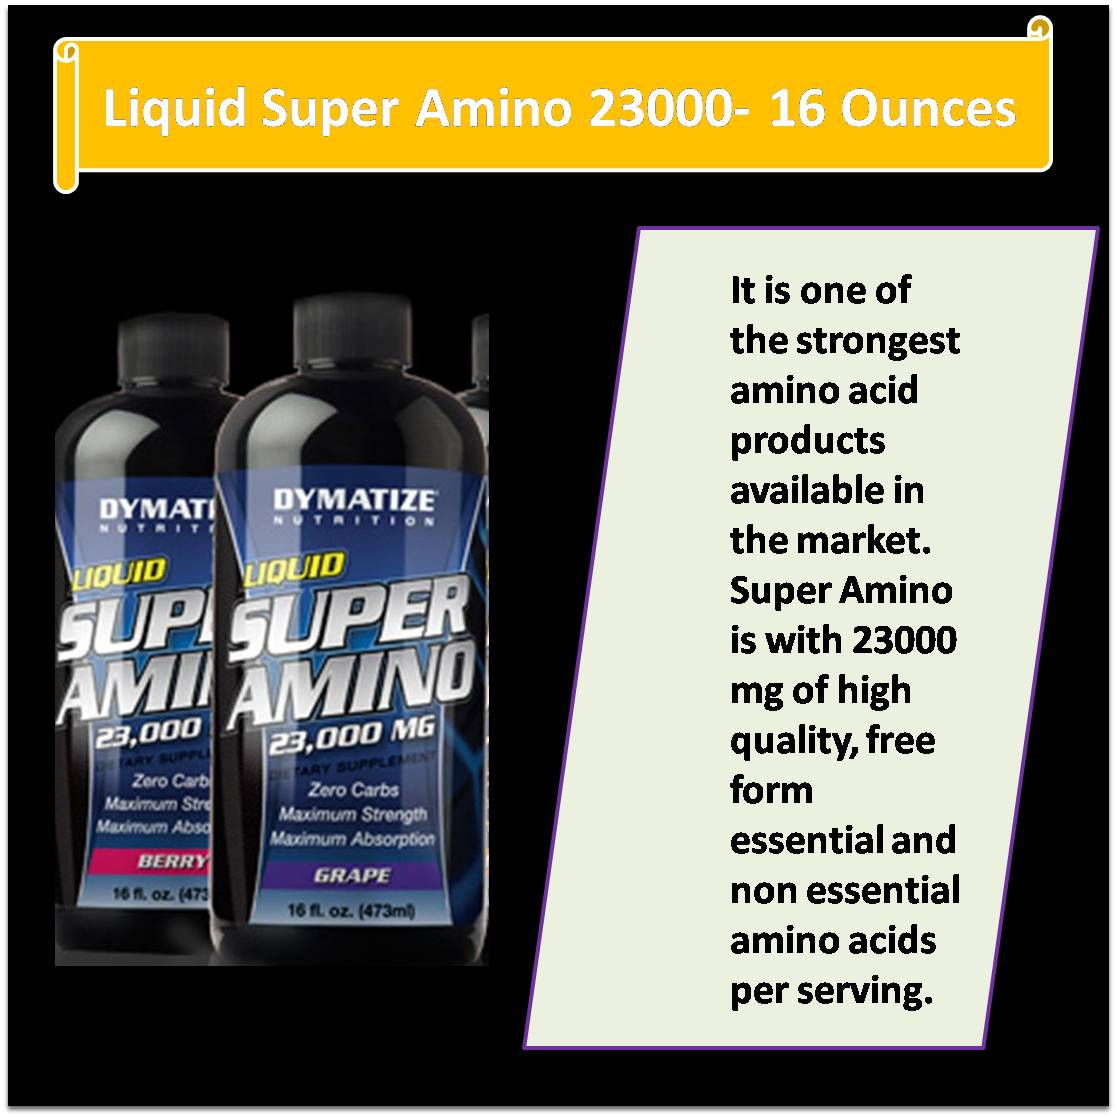 Liquid Super Amino 23000- 16 Ounces